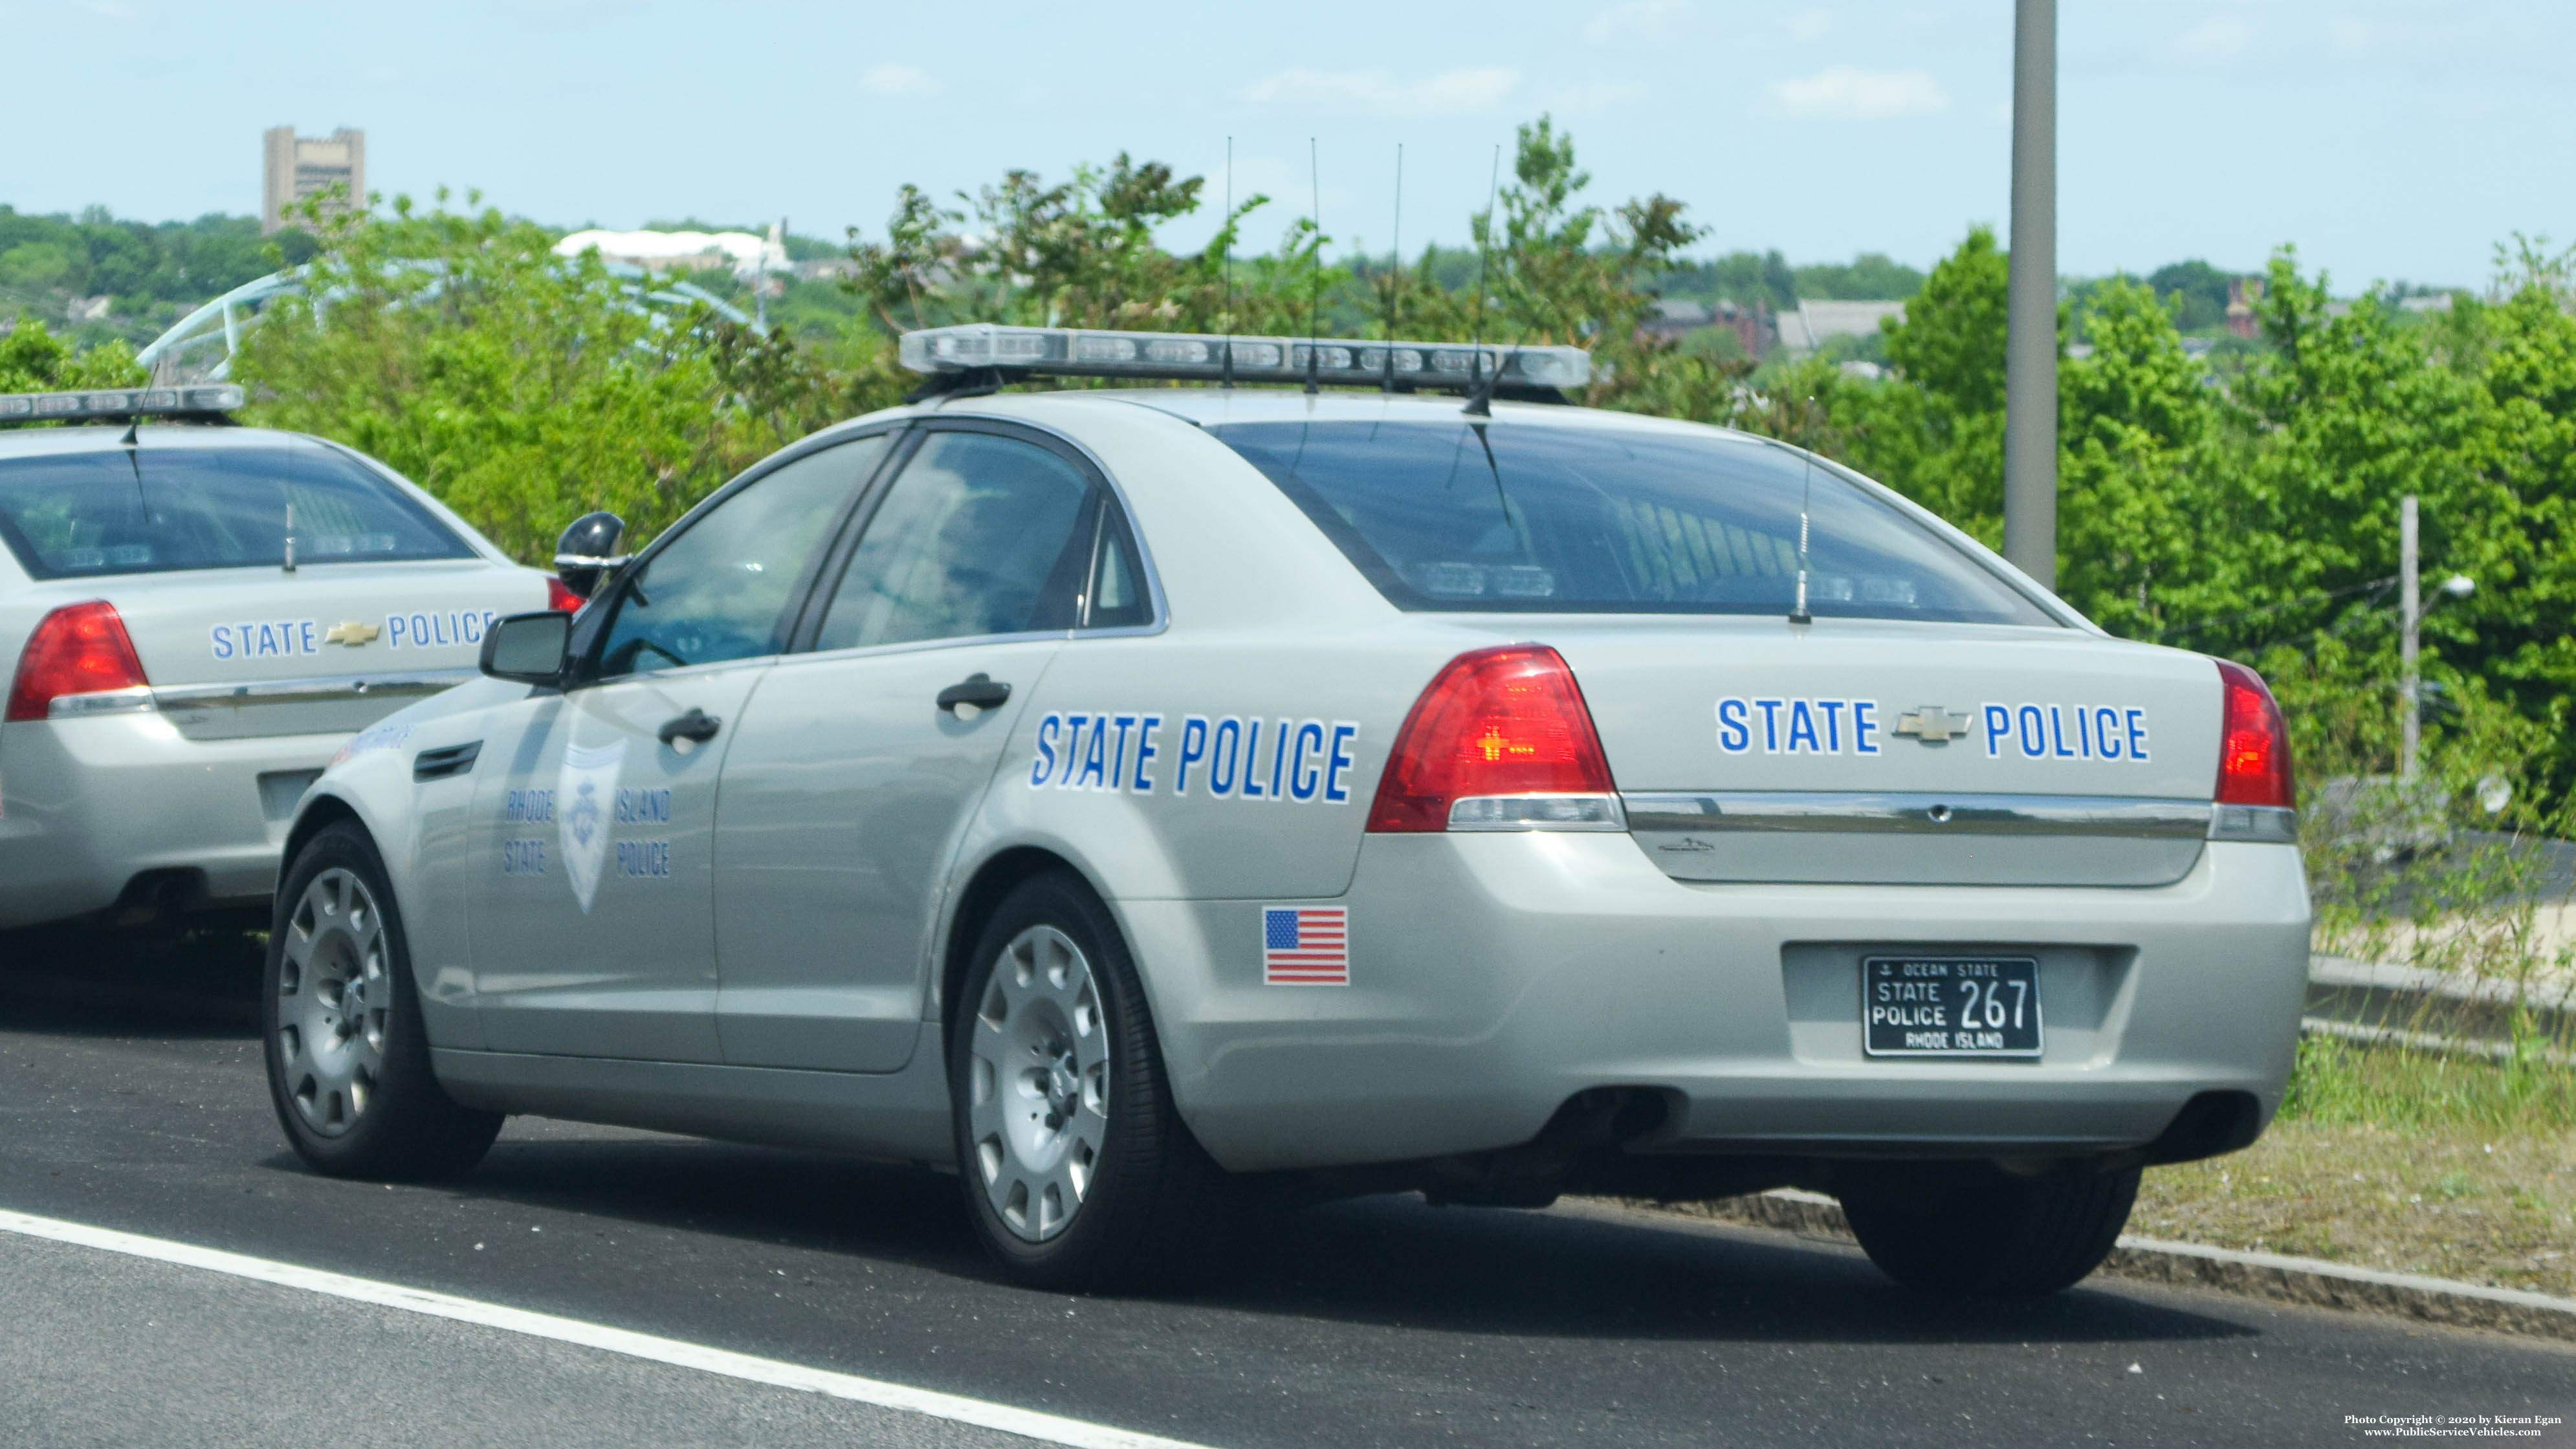 A photo  of Rhode Island State Police             Cruiser 267, a 2013 Chevrolet Caprice             taken by Kieran Egan